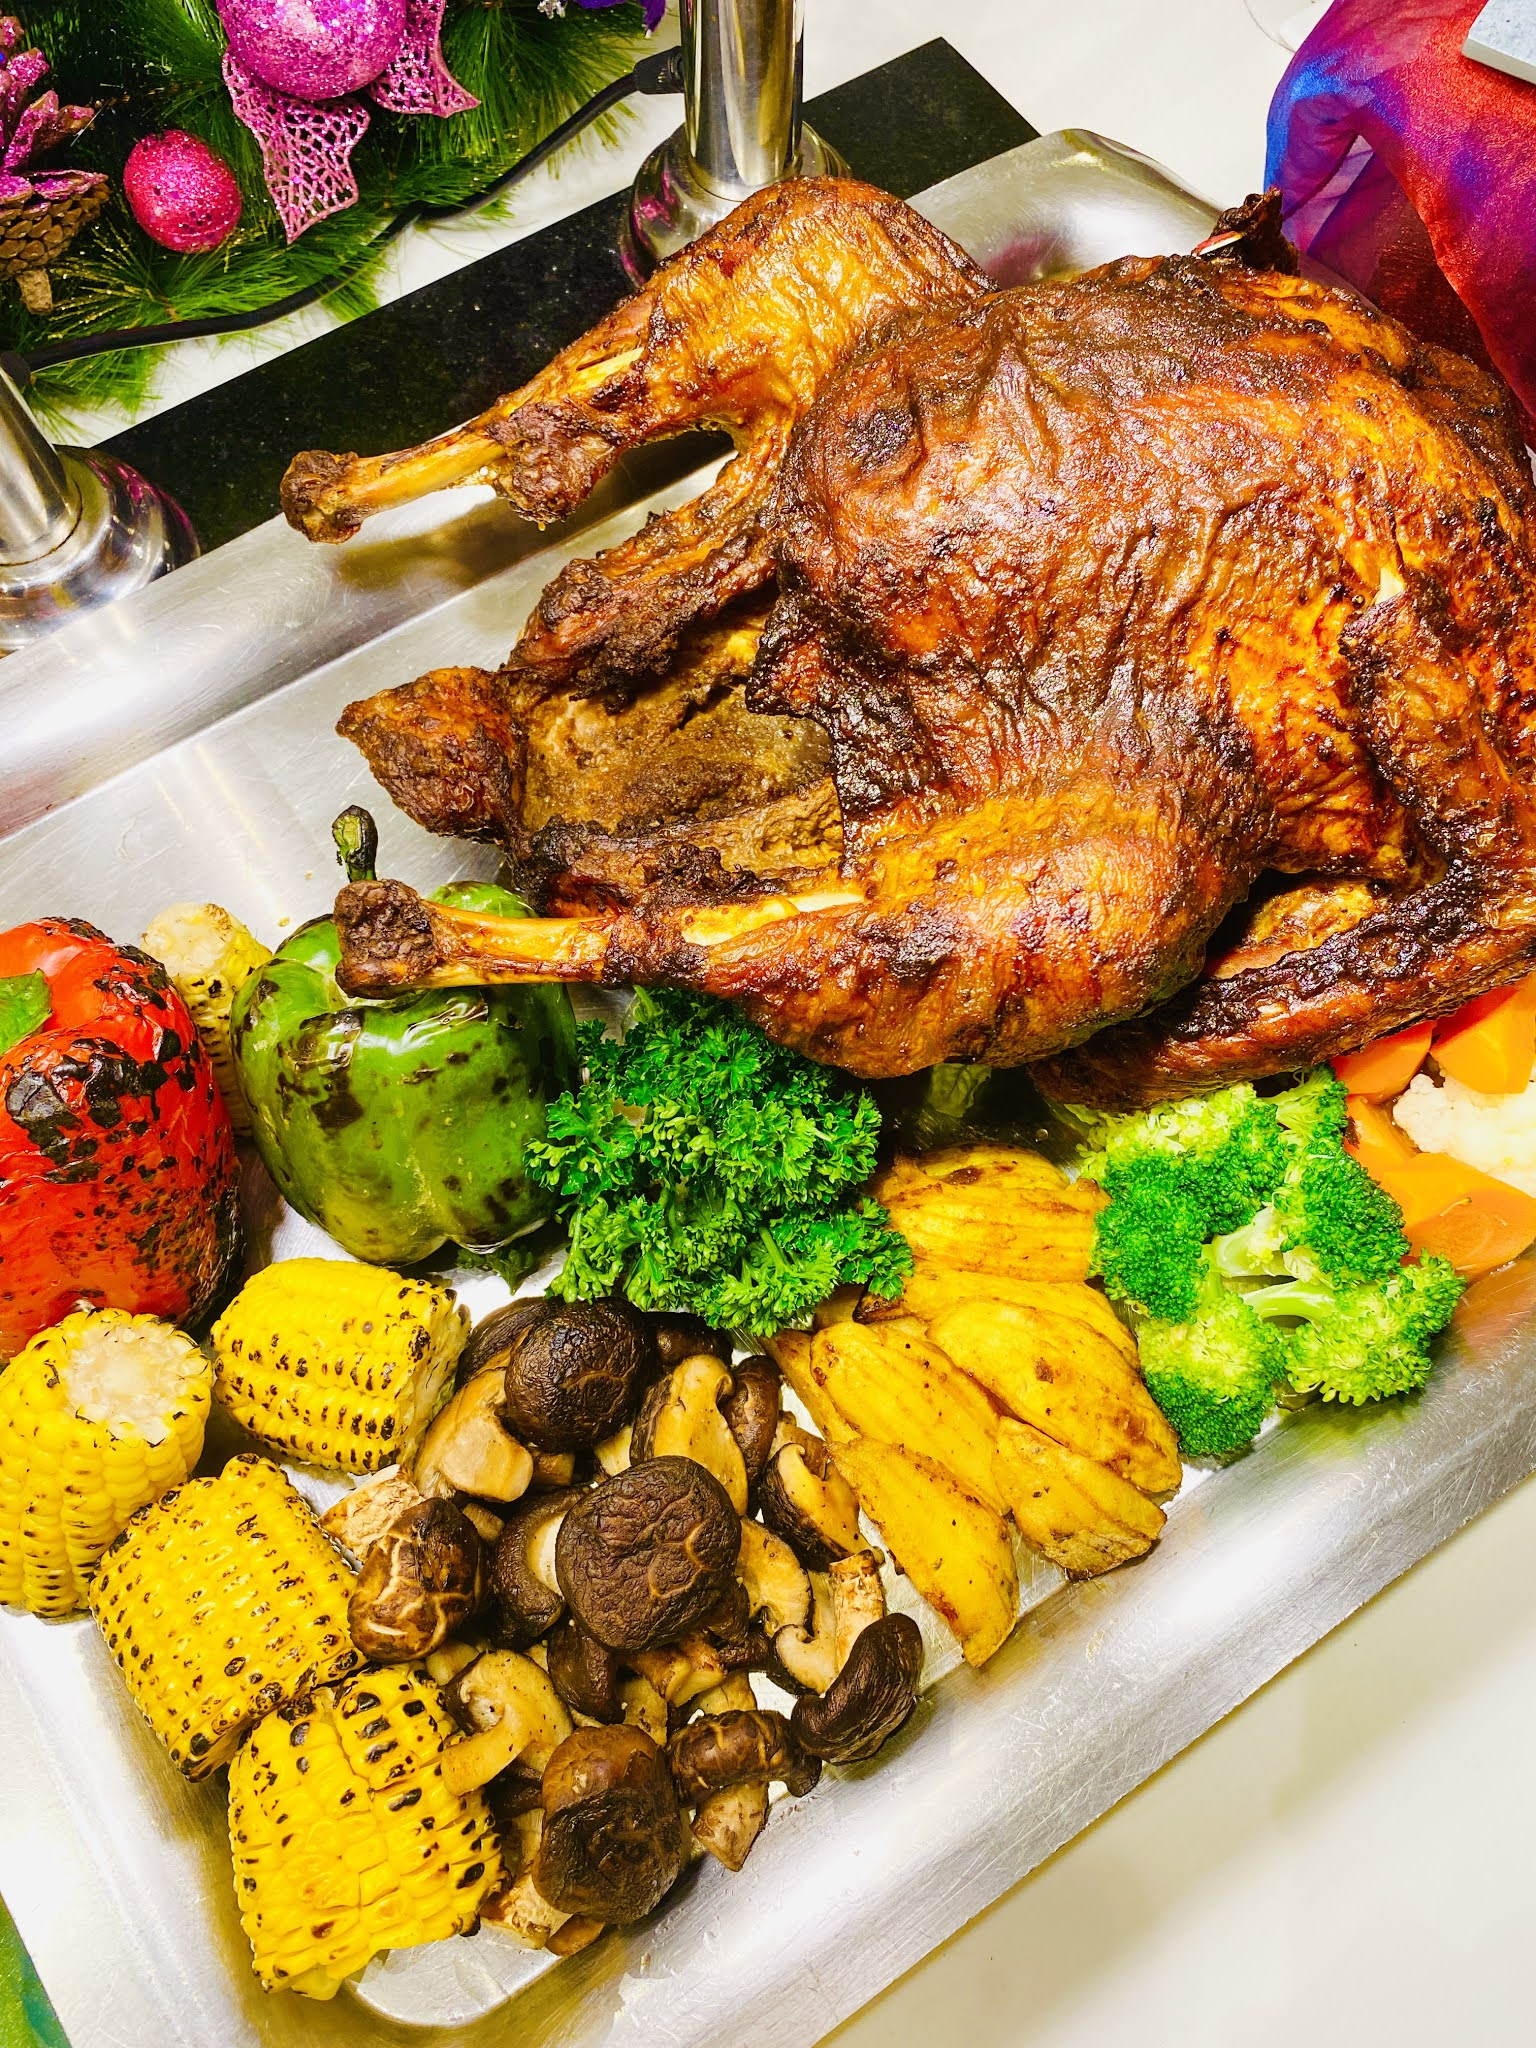 Year-End Festive Semi Buffet Dinner at Promenade Cafe, Promenade Hotel Kota Kinabalu